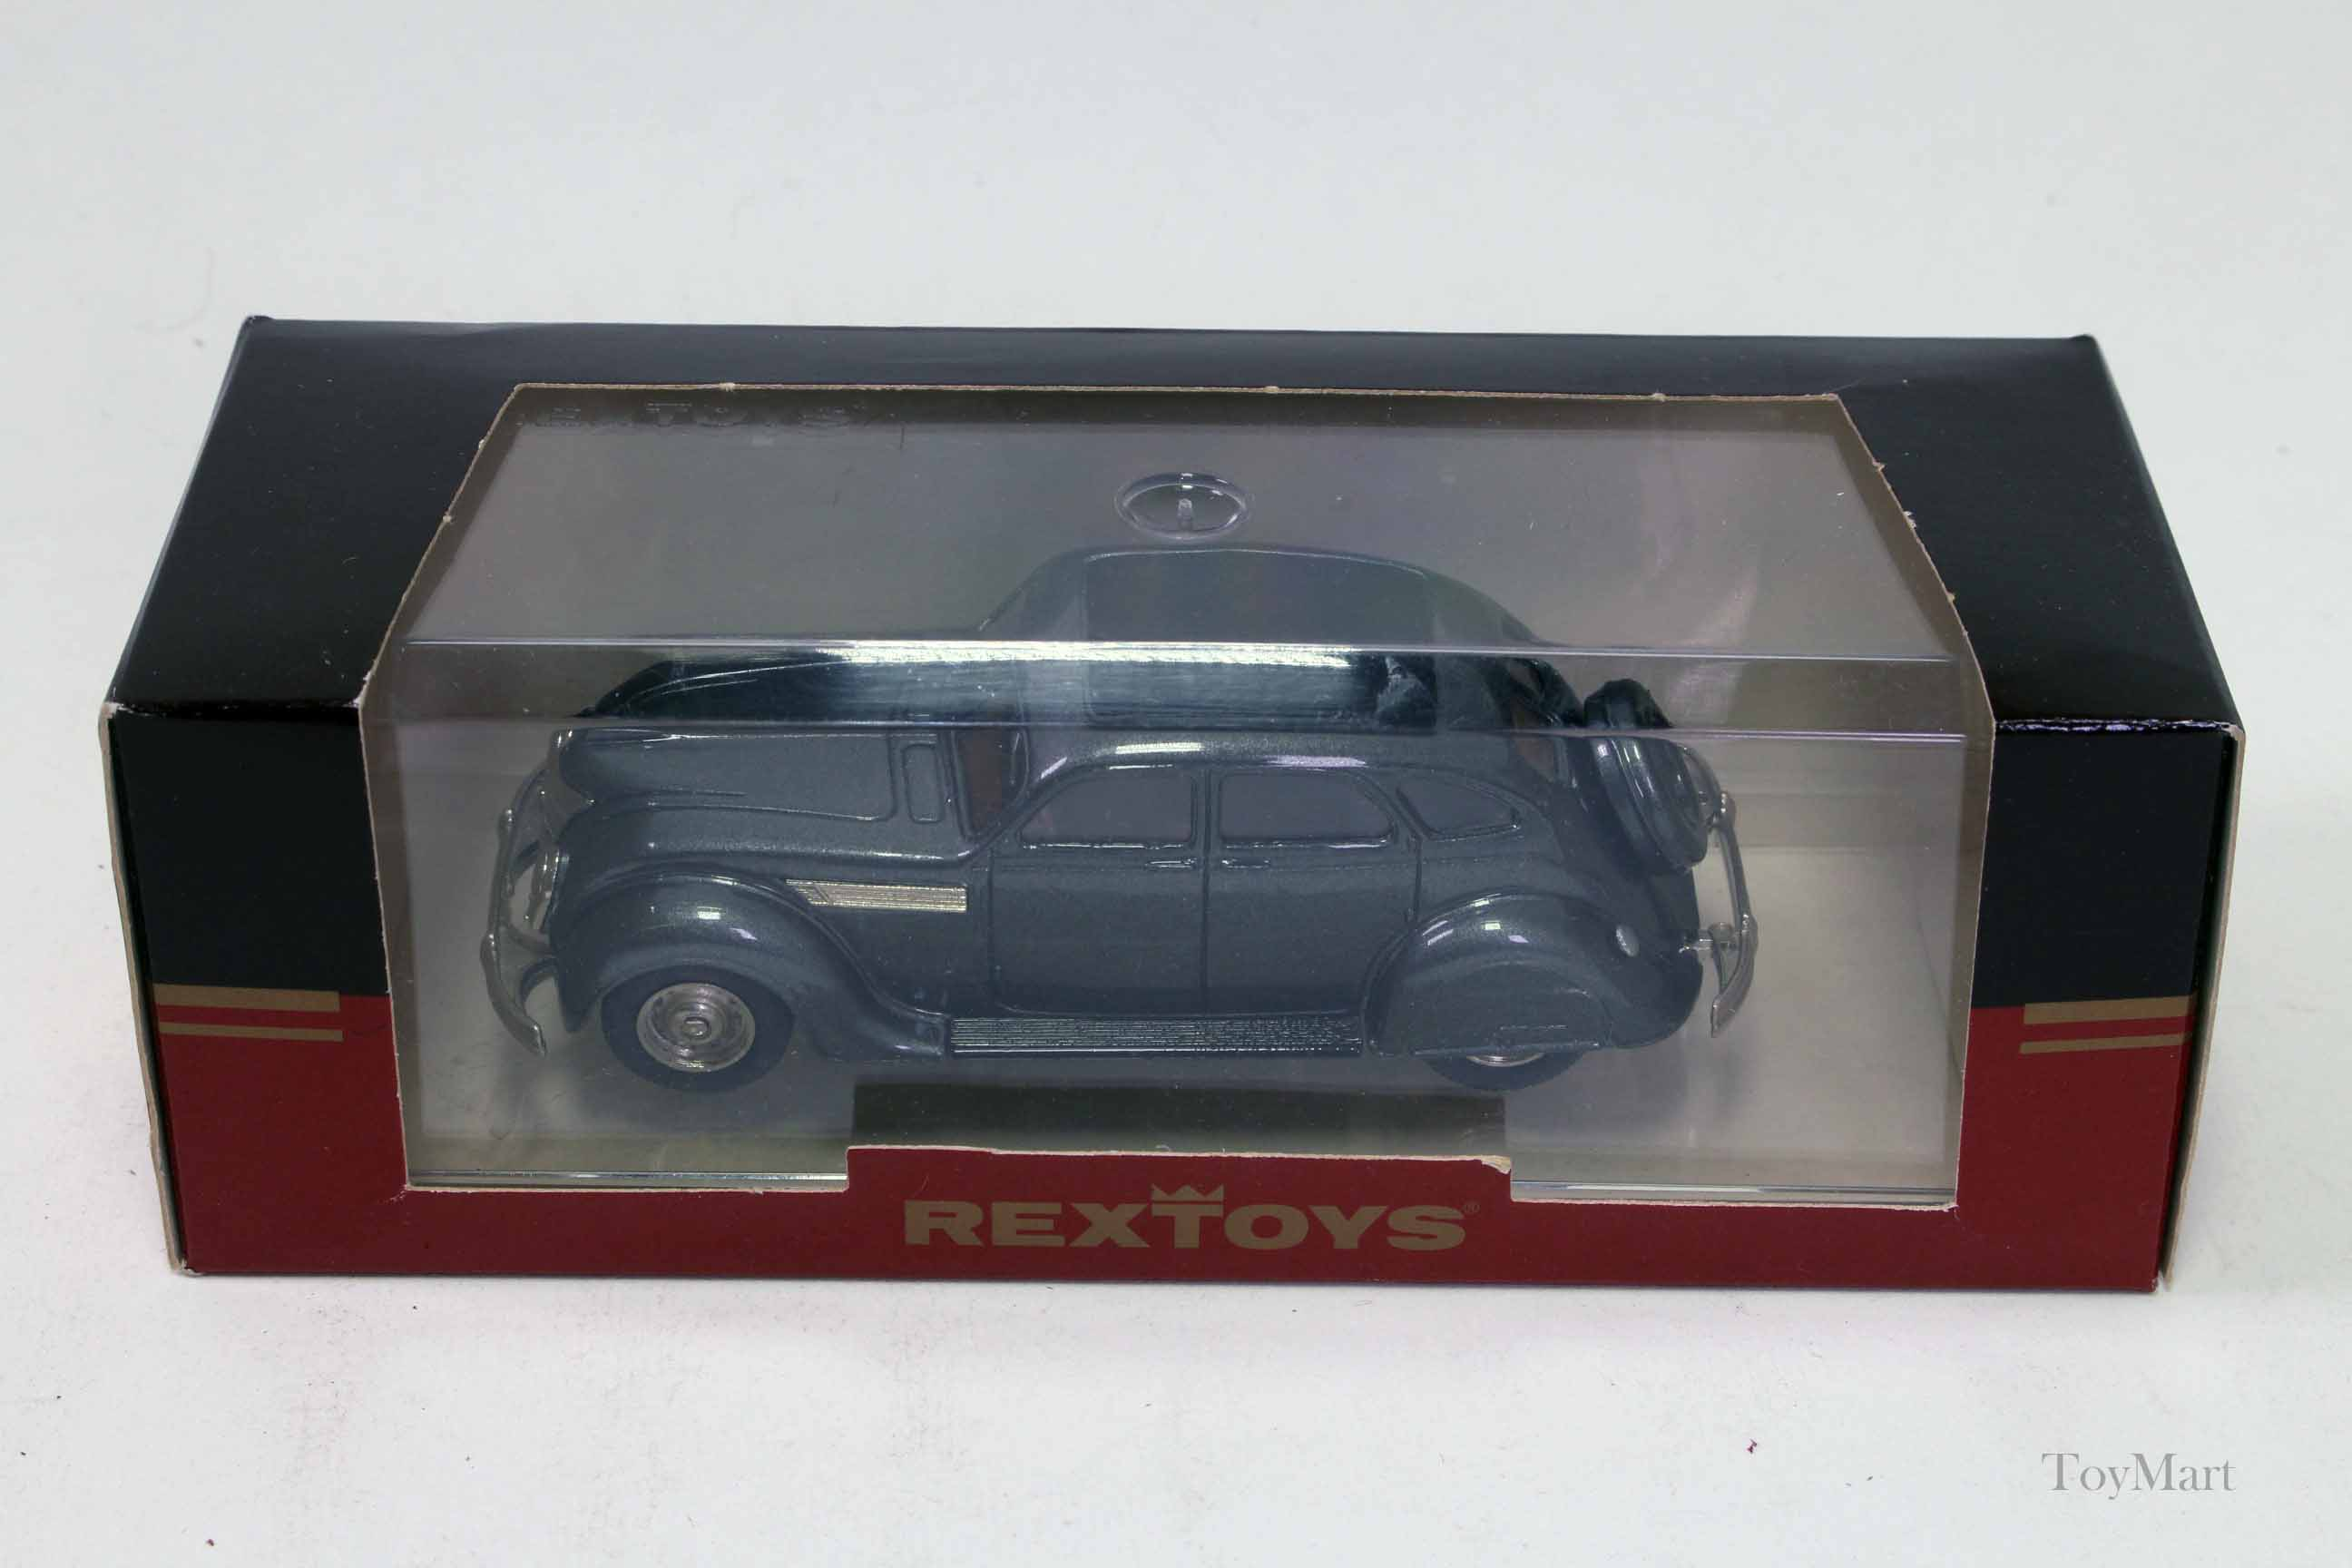 Rextoys 21, Chrysler Airflow 1935 - Buy, Sell, Review & Free Price ...